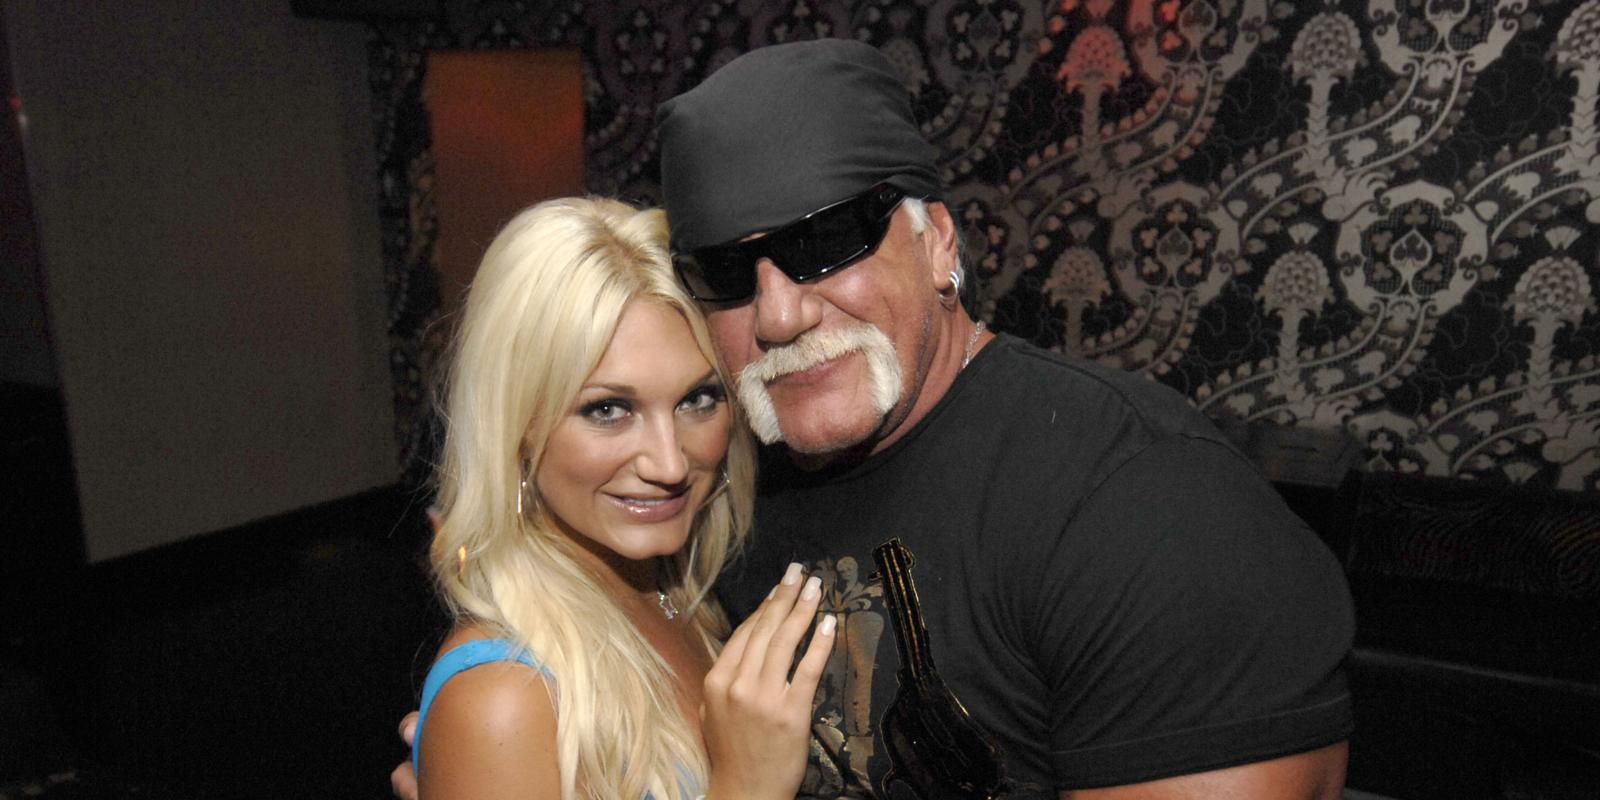 Hulk Hogan is apparently in talks with the WWE to return at WrestleMania 33